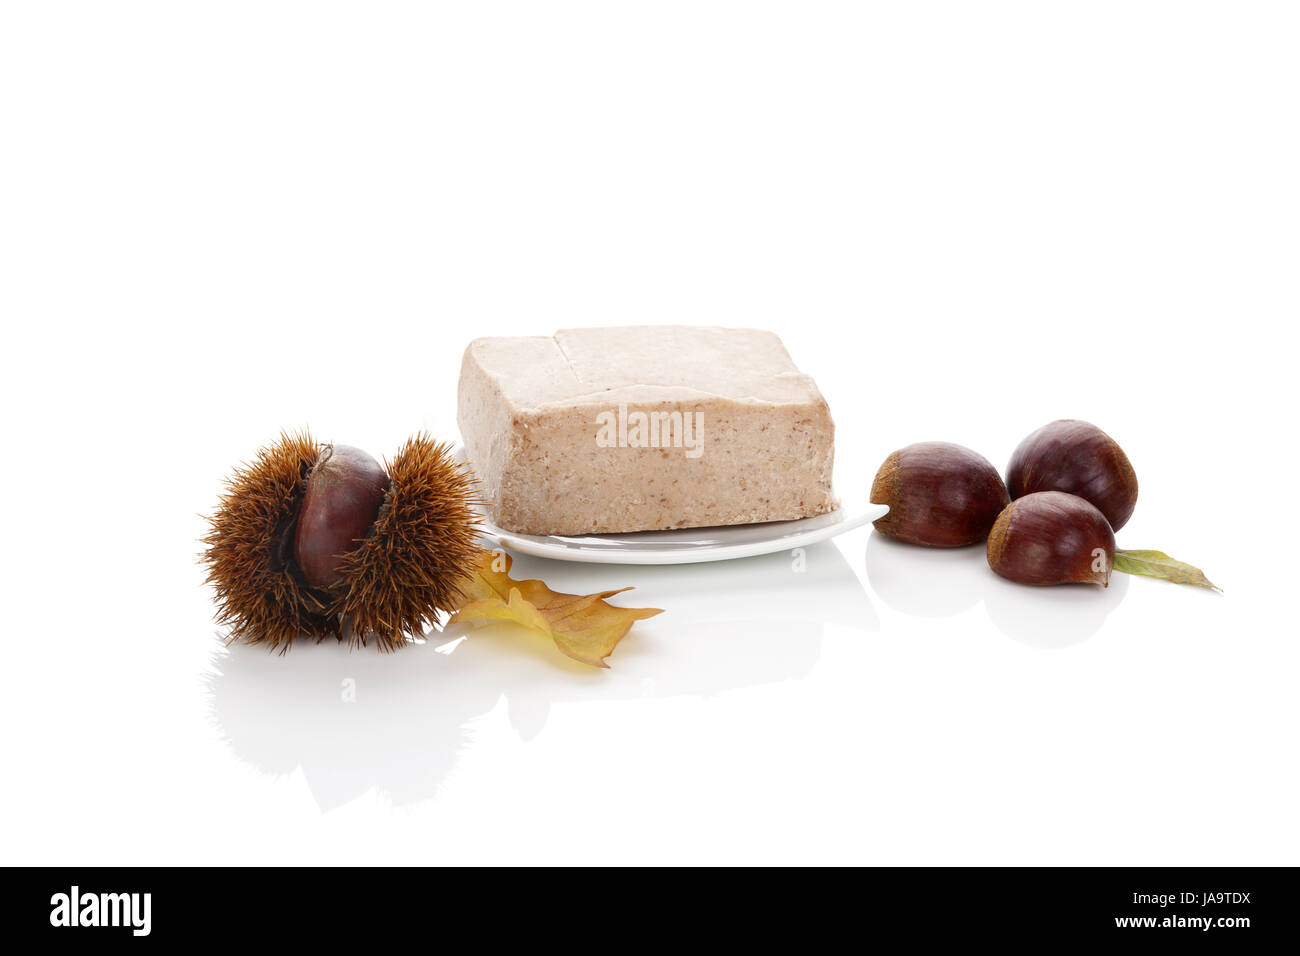 Chestnut puree with raw chestnuts isolated on white background. - Stock Image